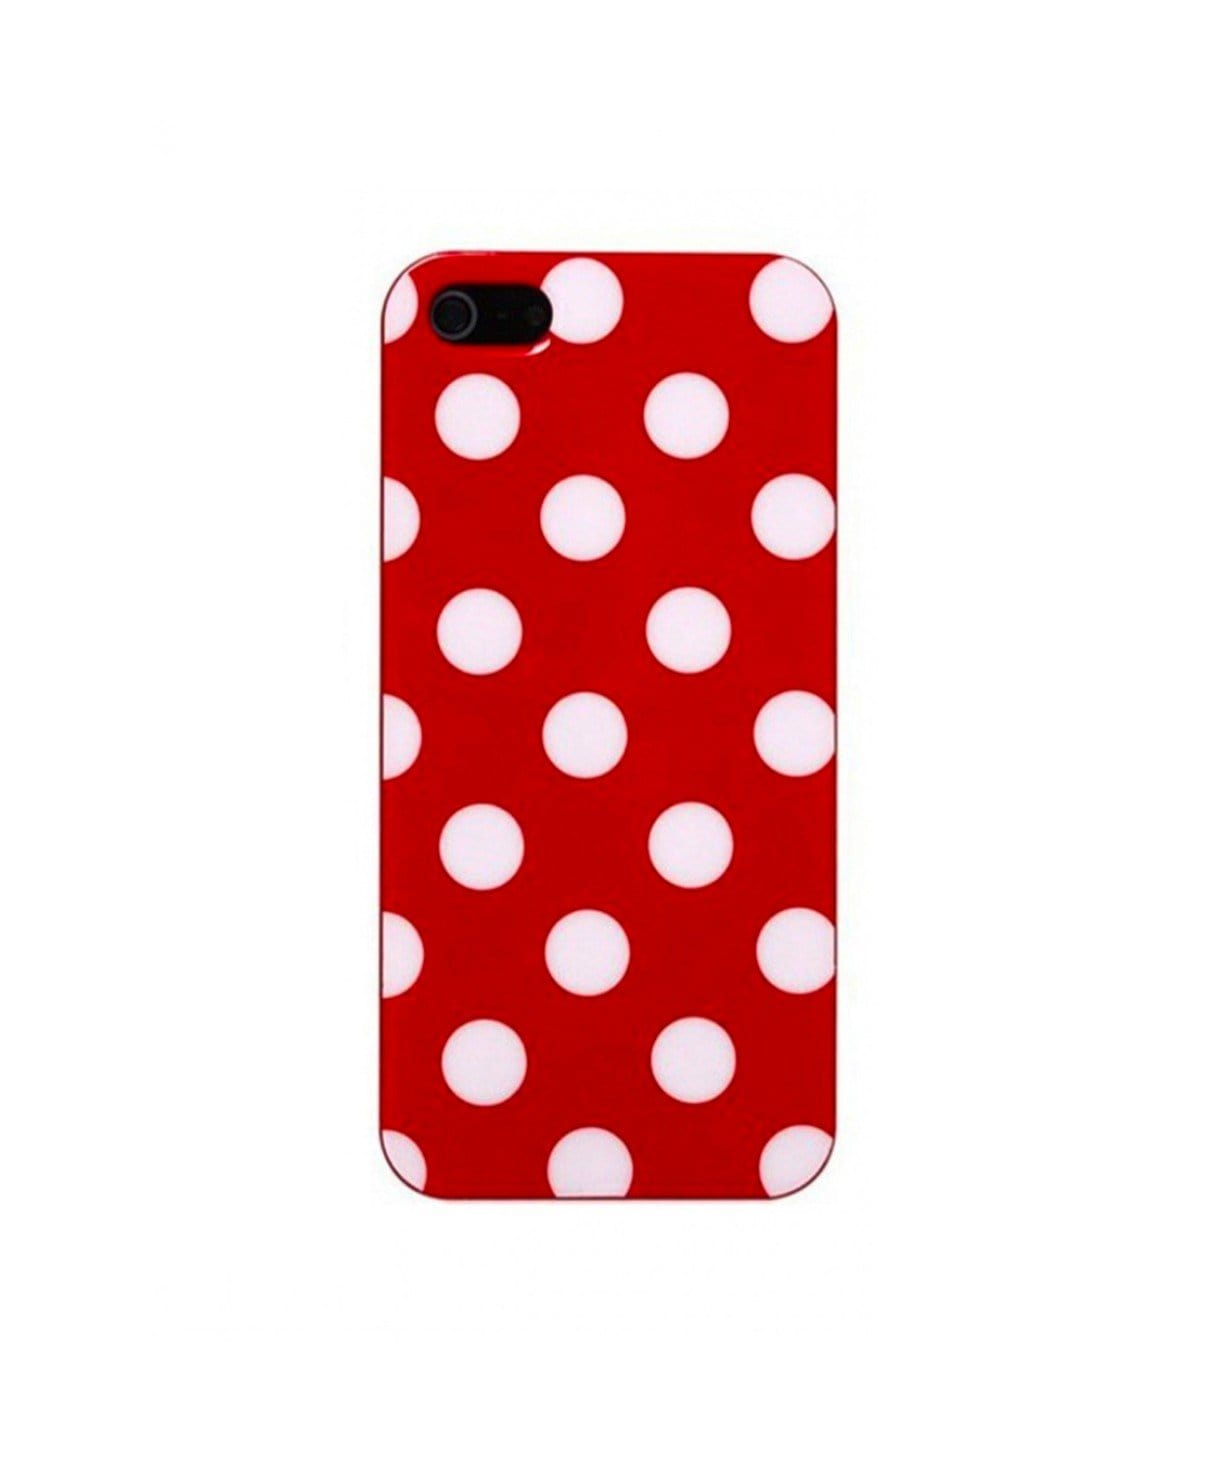 Polka Dot IPhone Cover - Uptownie